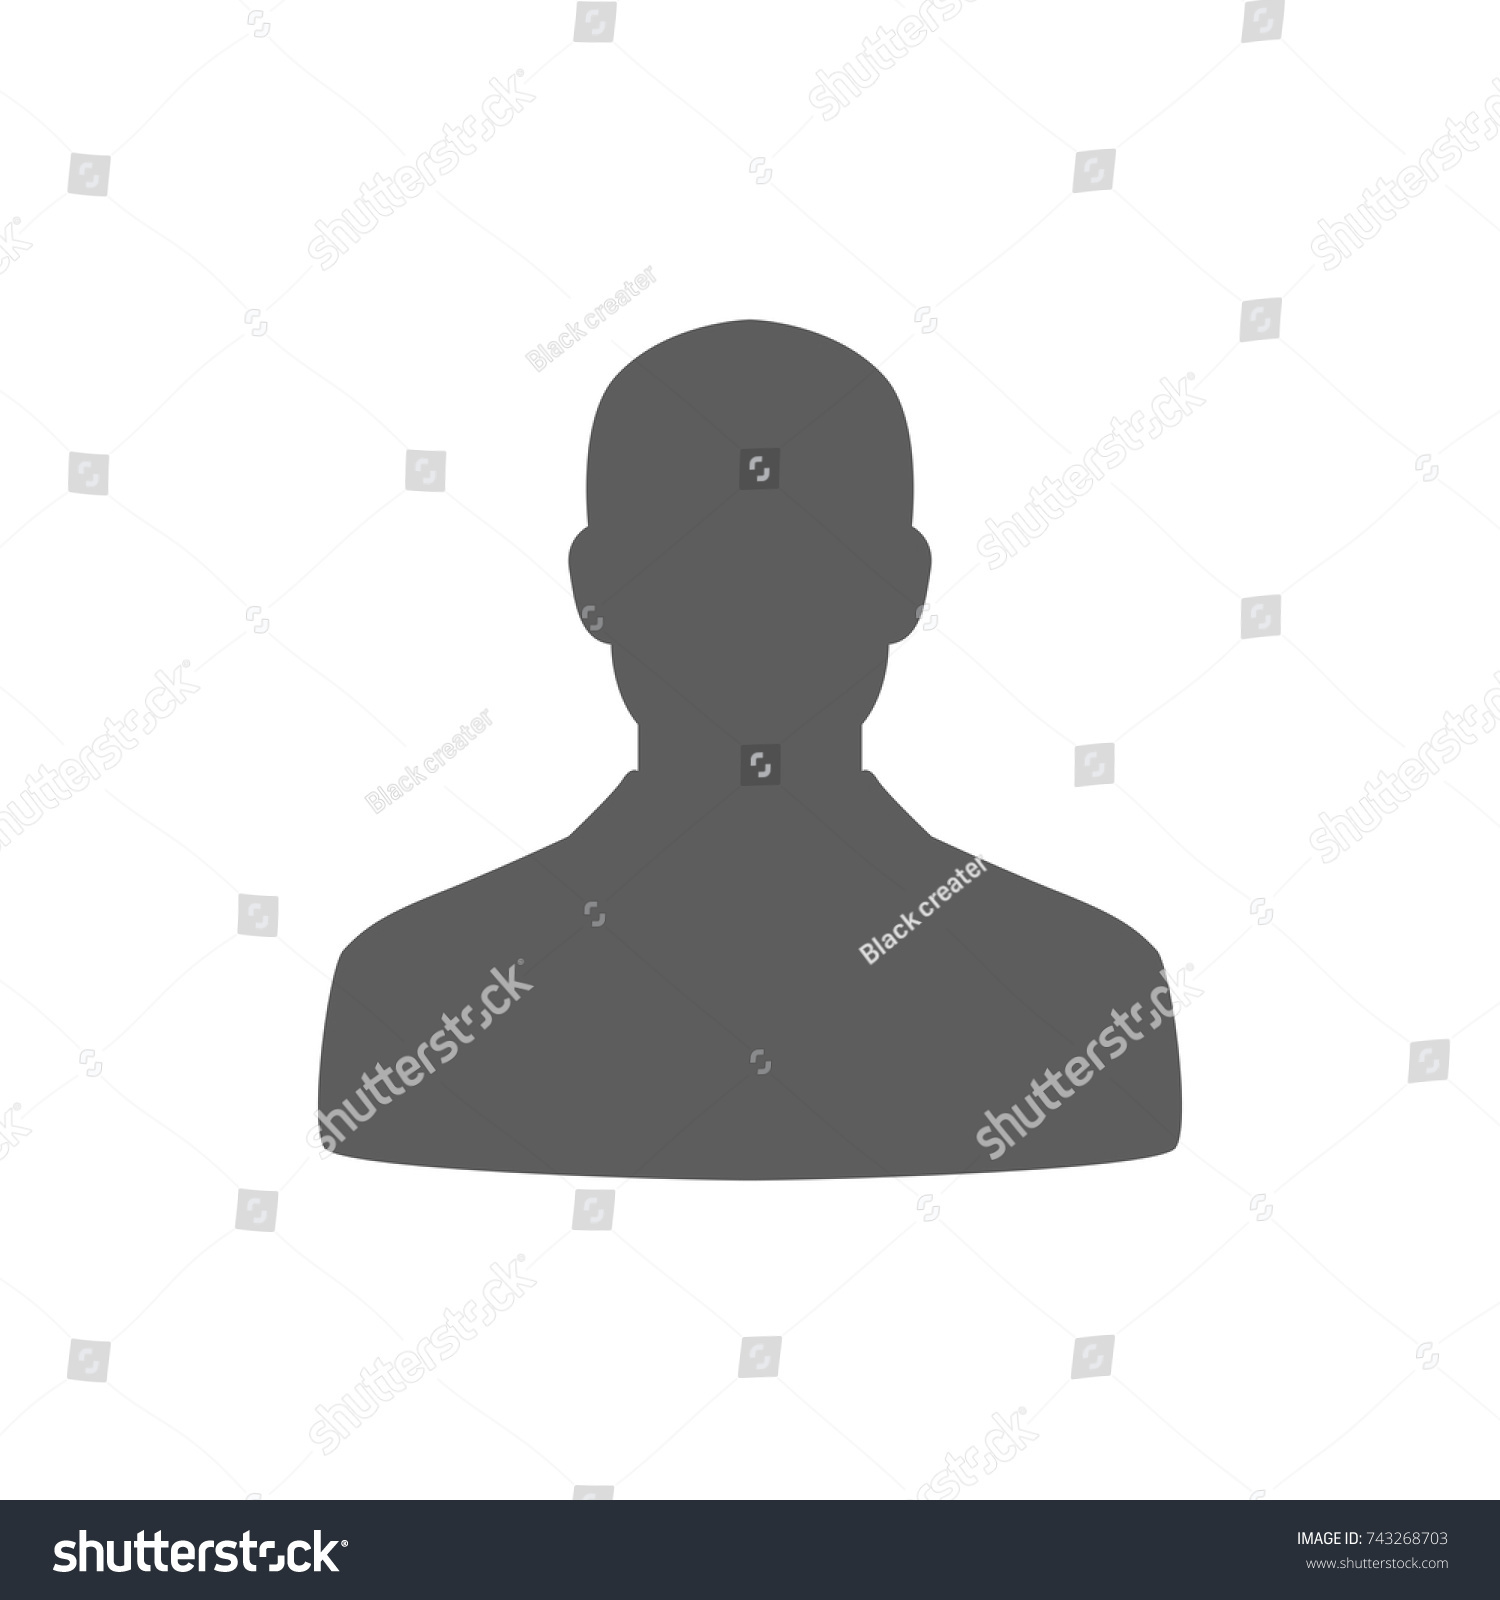 Person Man Icon In Trendy Flat Style Isolated On White Background